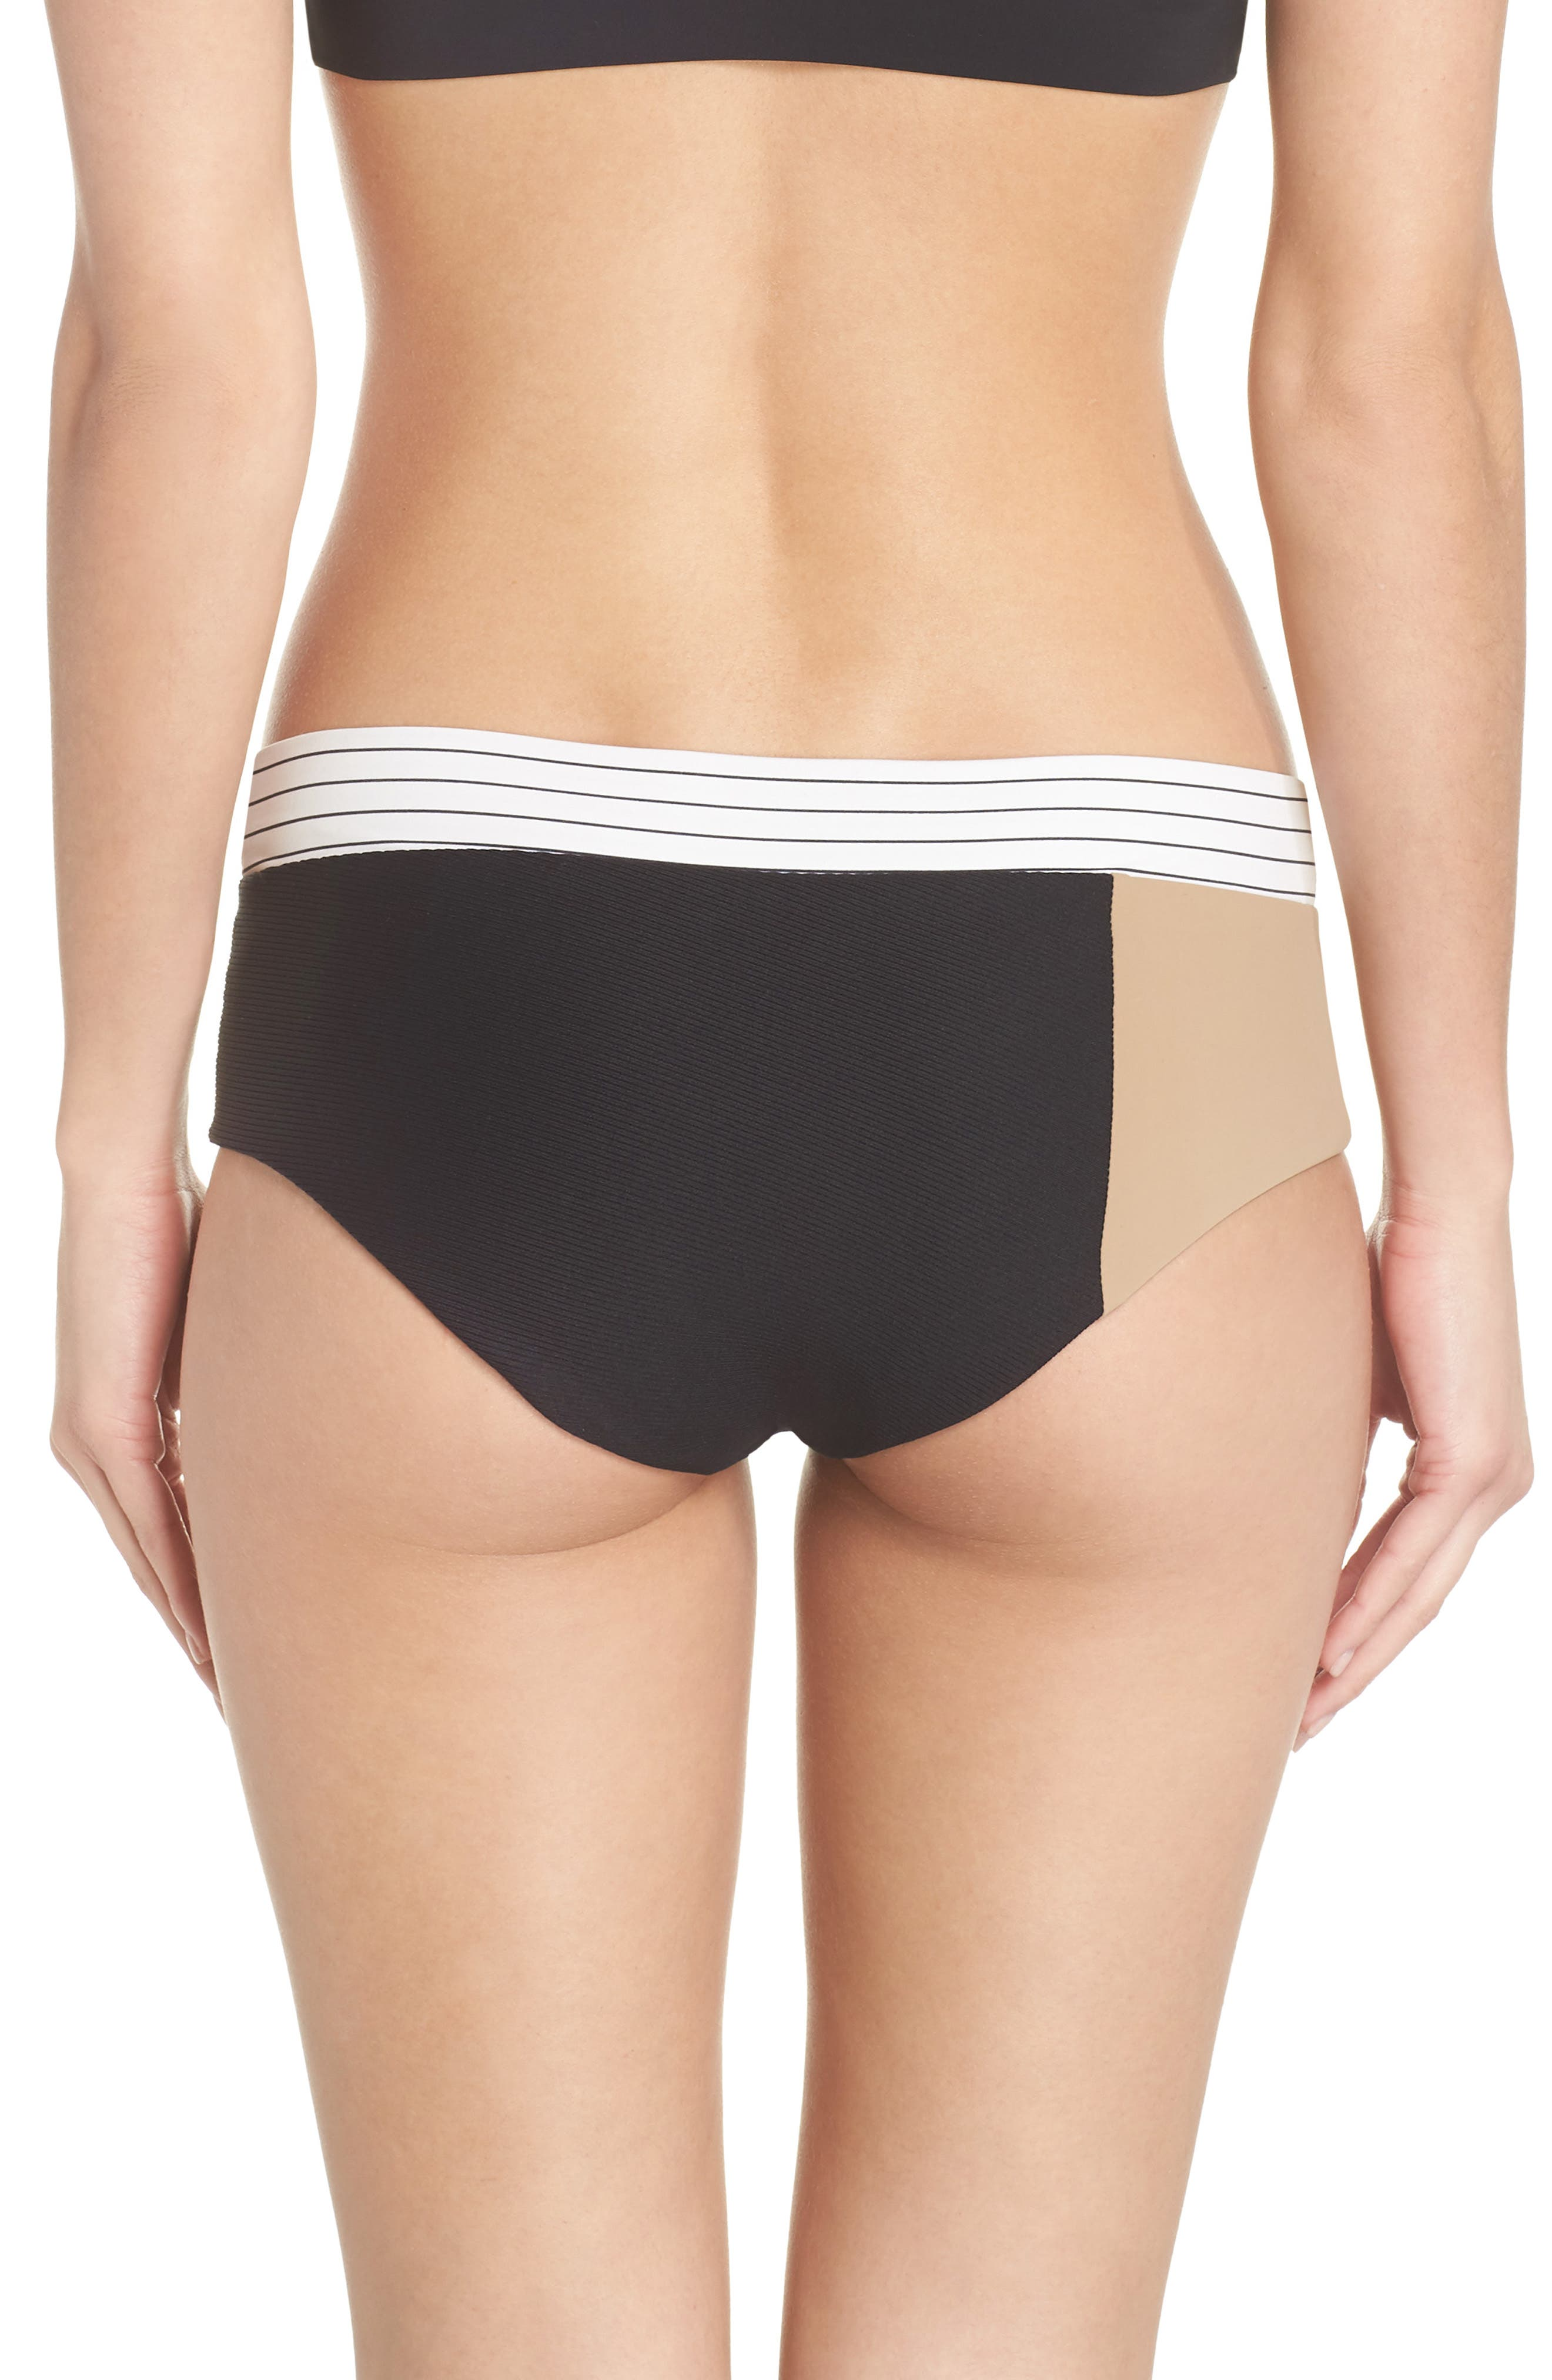 Makaveli Bikini Bottoms,                             Alternate thumbnail 3, color,